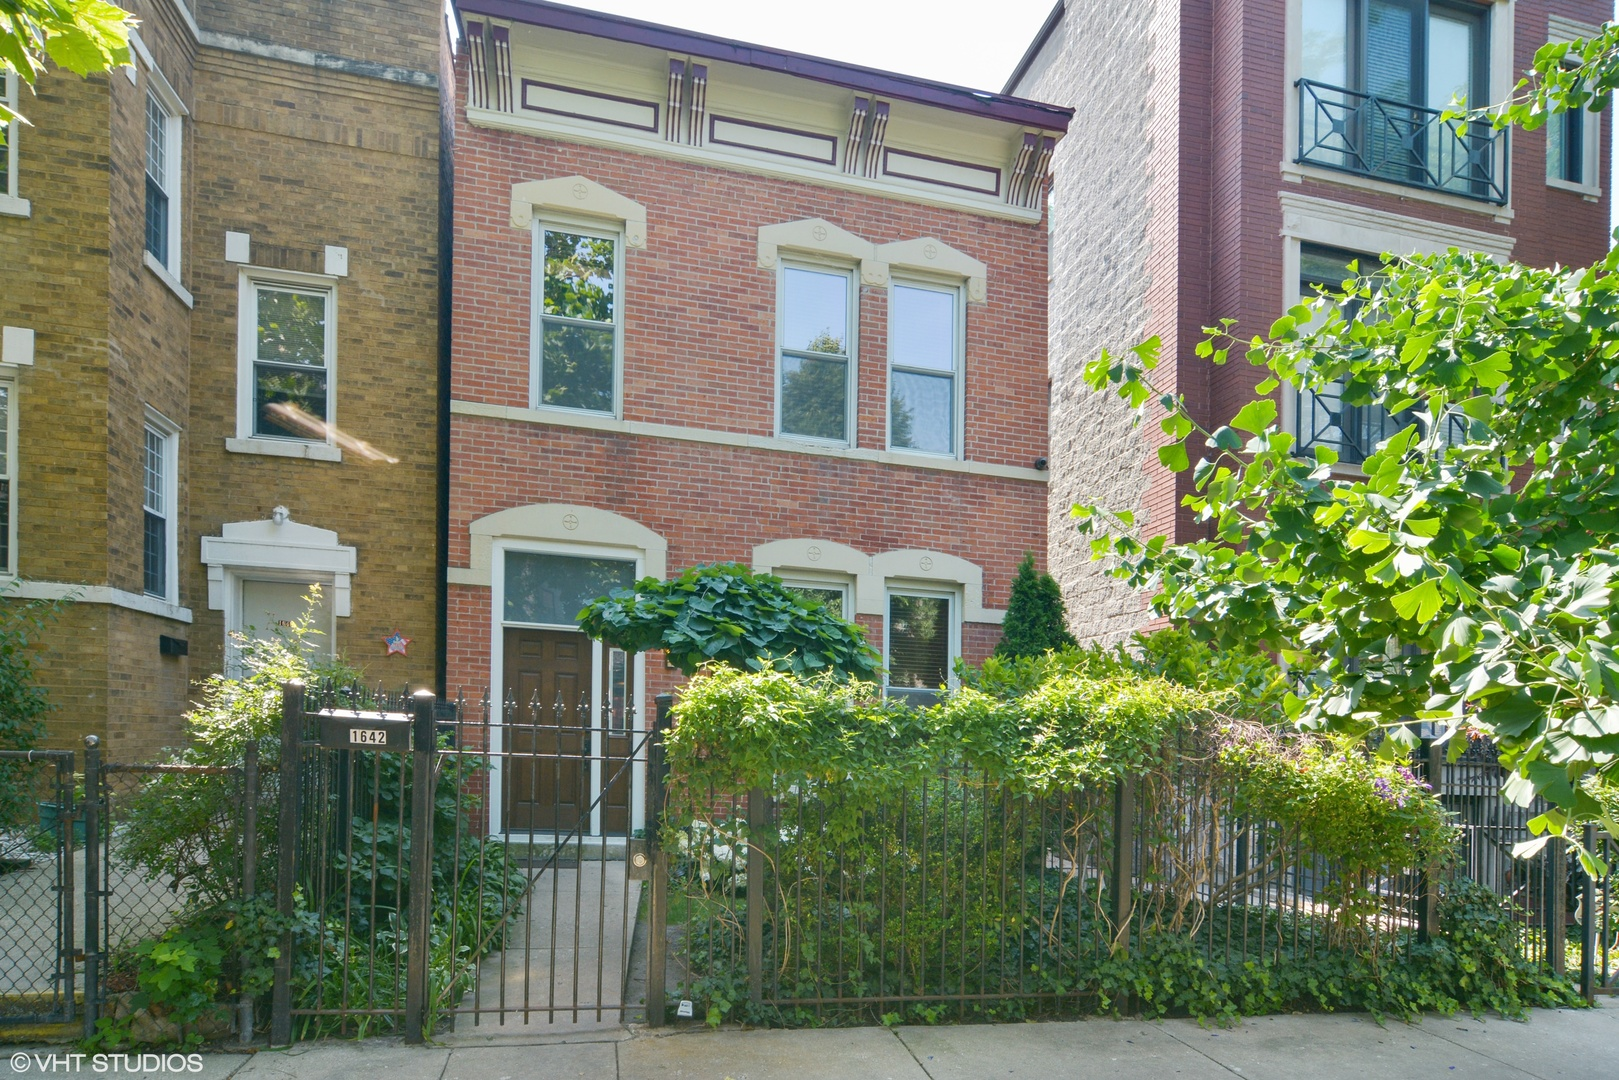 """Gorgeous 2-story, all brick home in the heart of Bucktown.  This home features 3 bedrooms, exposed brick, 10 foot ceilings, large windows, fireplace, and hardwood floors throughout. The home has been impeccably maintained, including a beautifully landscaped yard with perennial garden, master bedroom with built in closet, 42"""" Cherry Cabinets in a kitchen that overlooks the back deck. Detached 2 car garage.  The home has been freshly painted and is in move in condition.  Walking distance to the Blue Line, the 606 Entrance, and vibrant North Ave / Damen intersection. Broker owned with many high end improvements over the years.  Best Buy in Bucktown."""